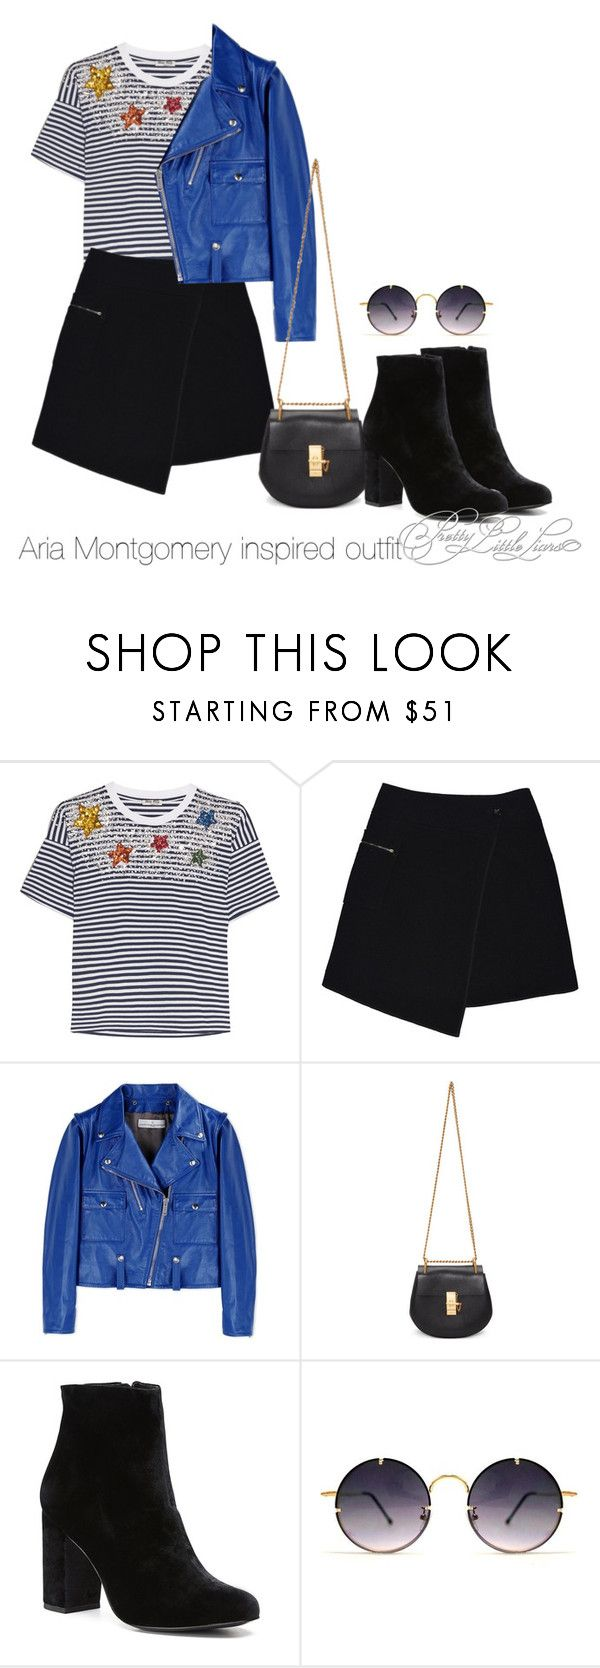 """Aria Montgomery inspired outfit"" by tvdsarahmichele ❤ liked on Polyvore featuring Miu Miu, MARC CAIN, Golden Goose, Chloé, Witchery and Spitfire"